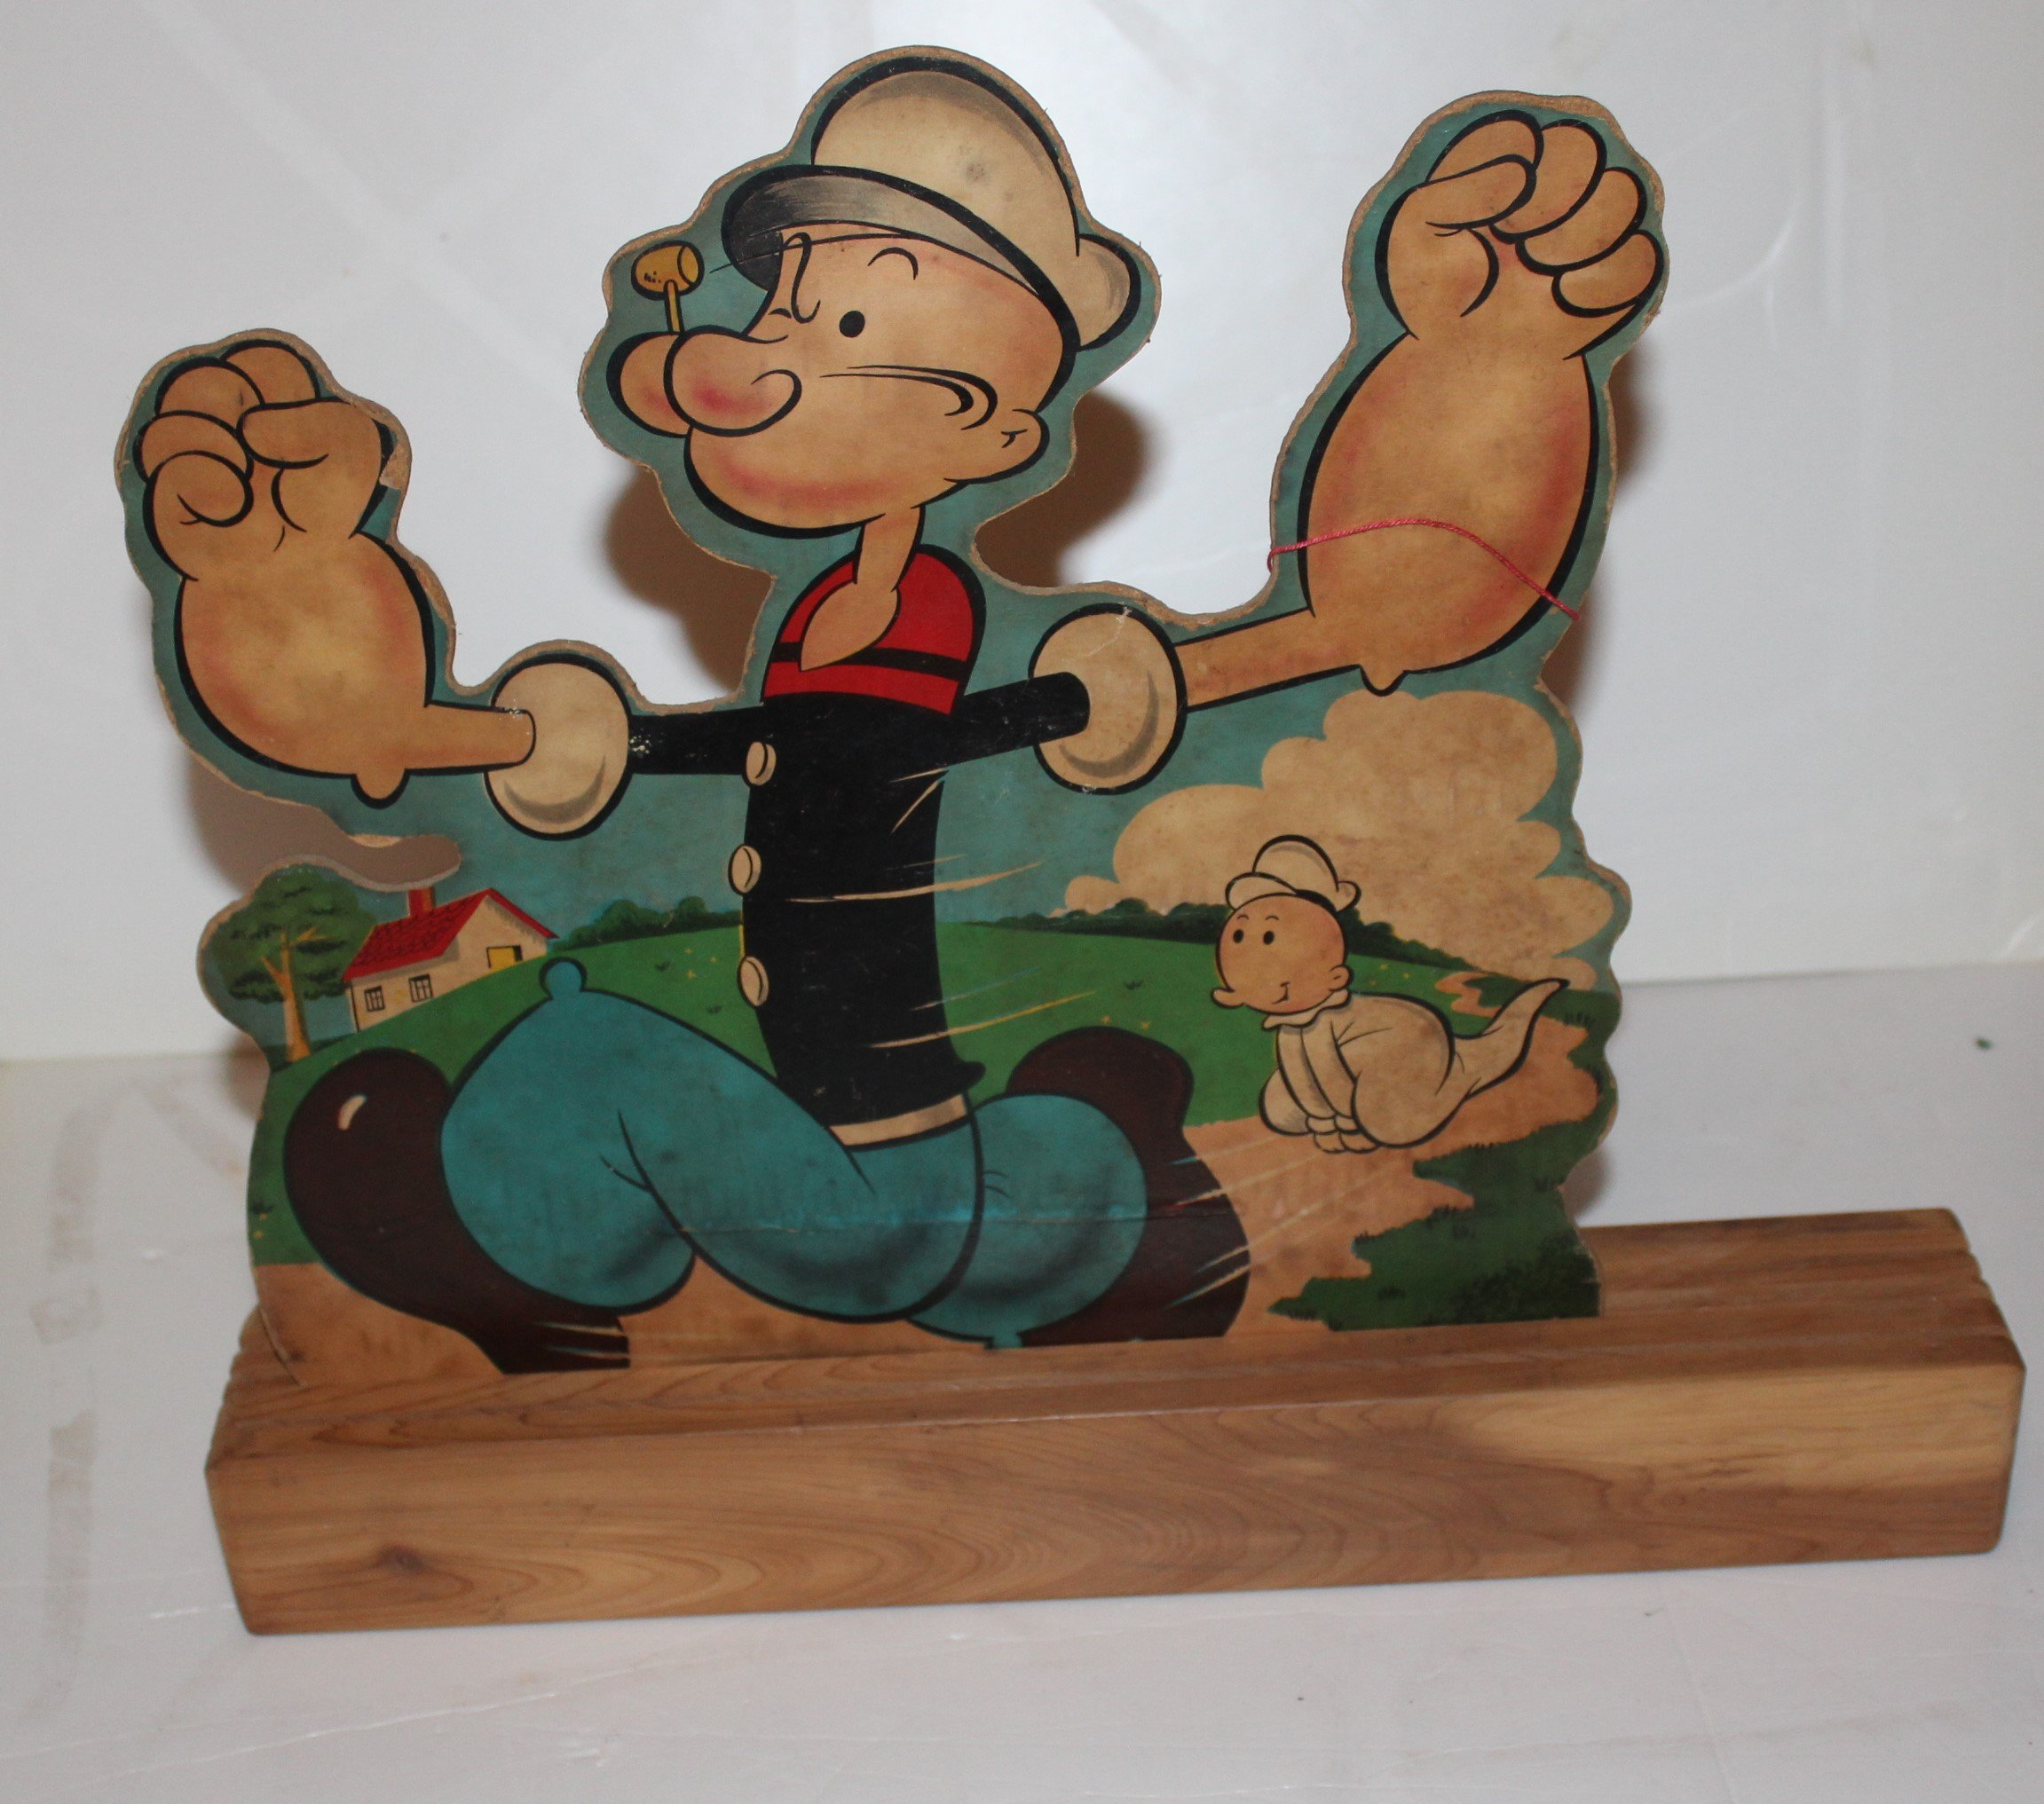 https://0201.nccdn.net/1_2/000/000/0d2/948/Popeye-specials-hard-board.JPG